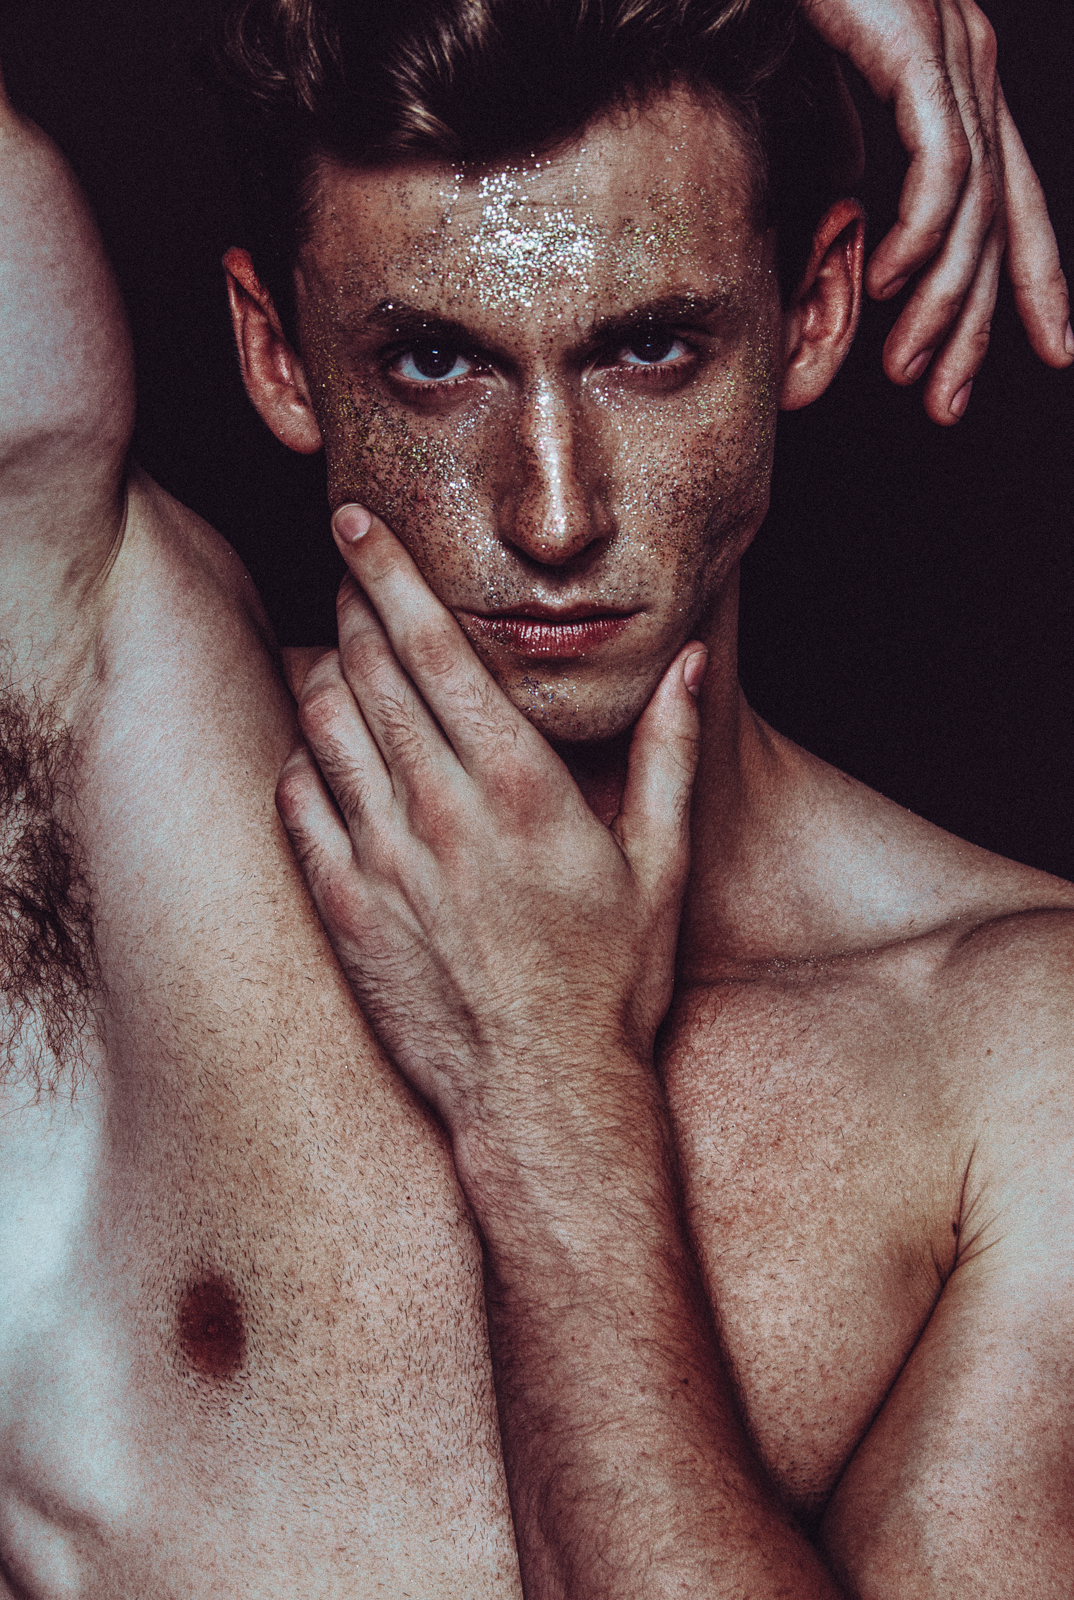 Adon Exclusive: Model Stephen Tracey By Barrington Orr